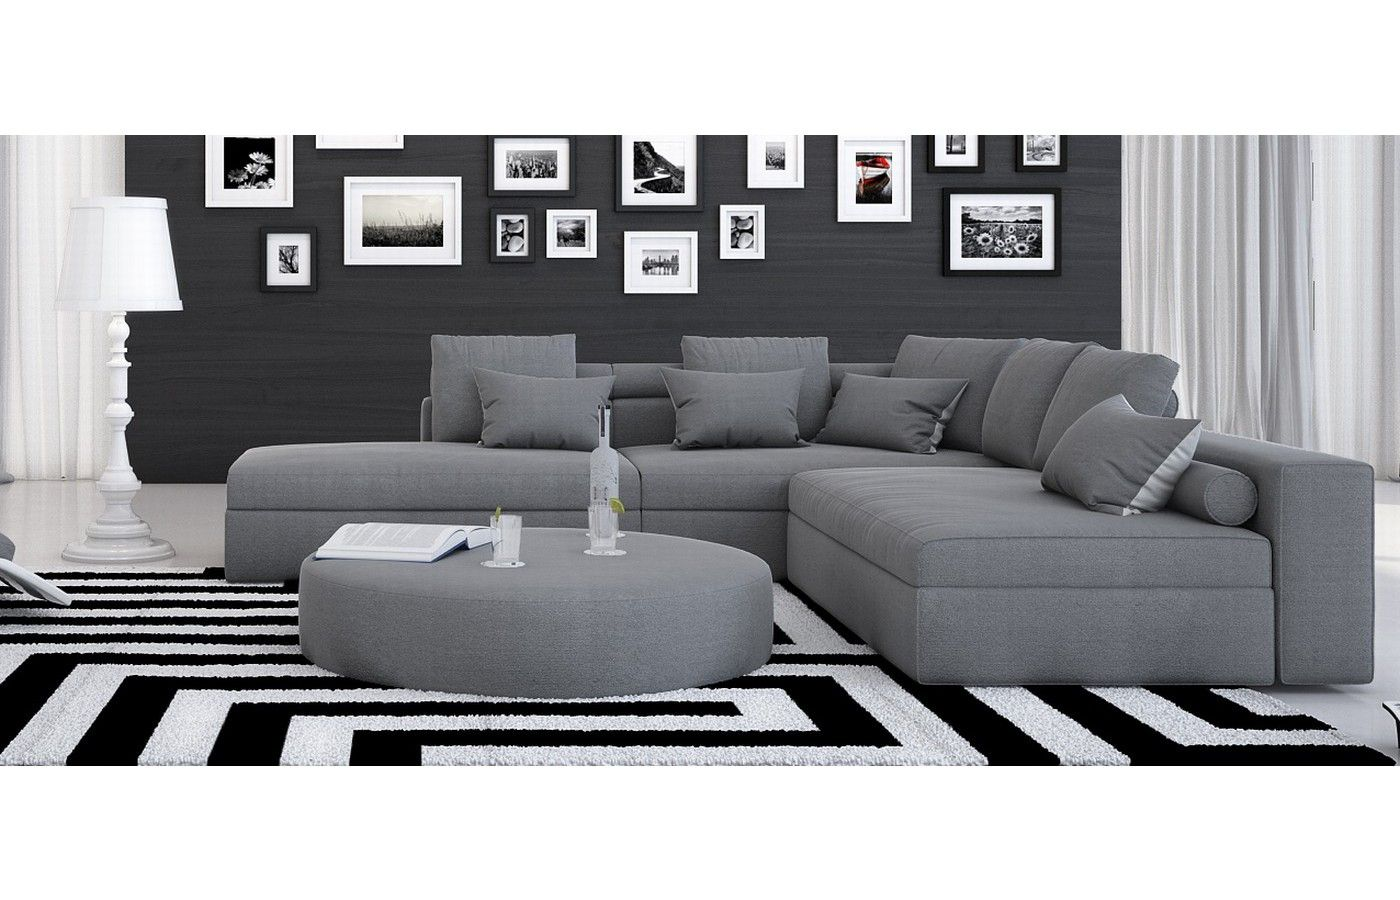 Ecksofa Grau Stoffsofa Ari Ecksofa In Grau At Home Sofa Stoff